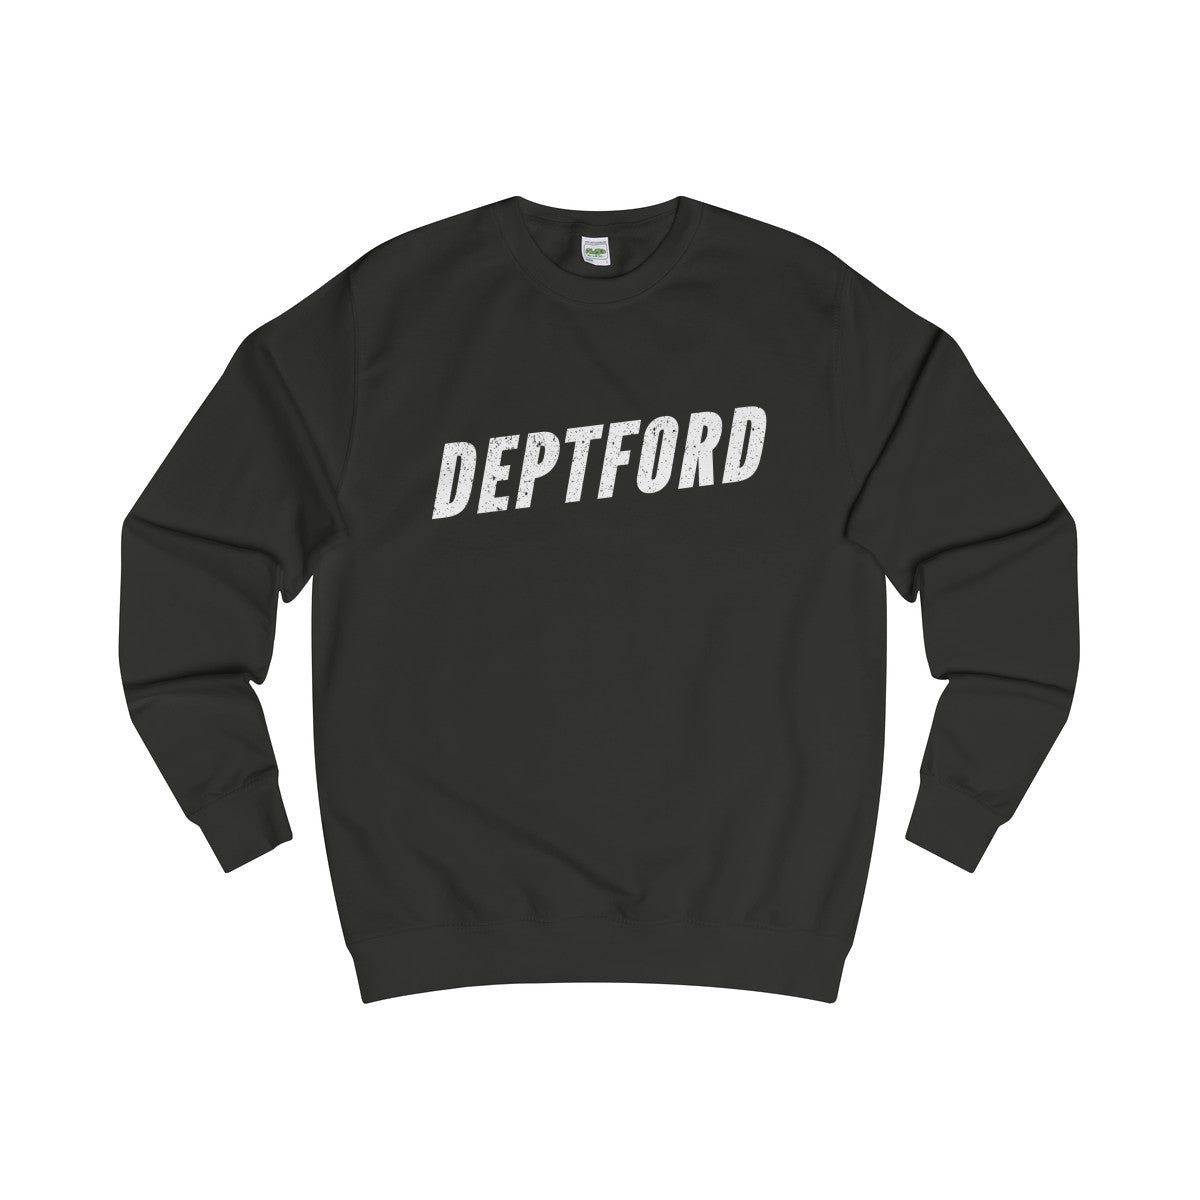 Deptford Sweater